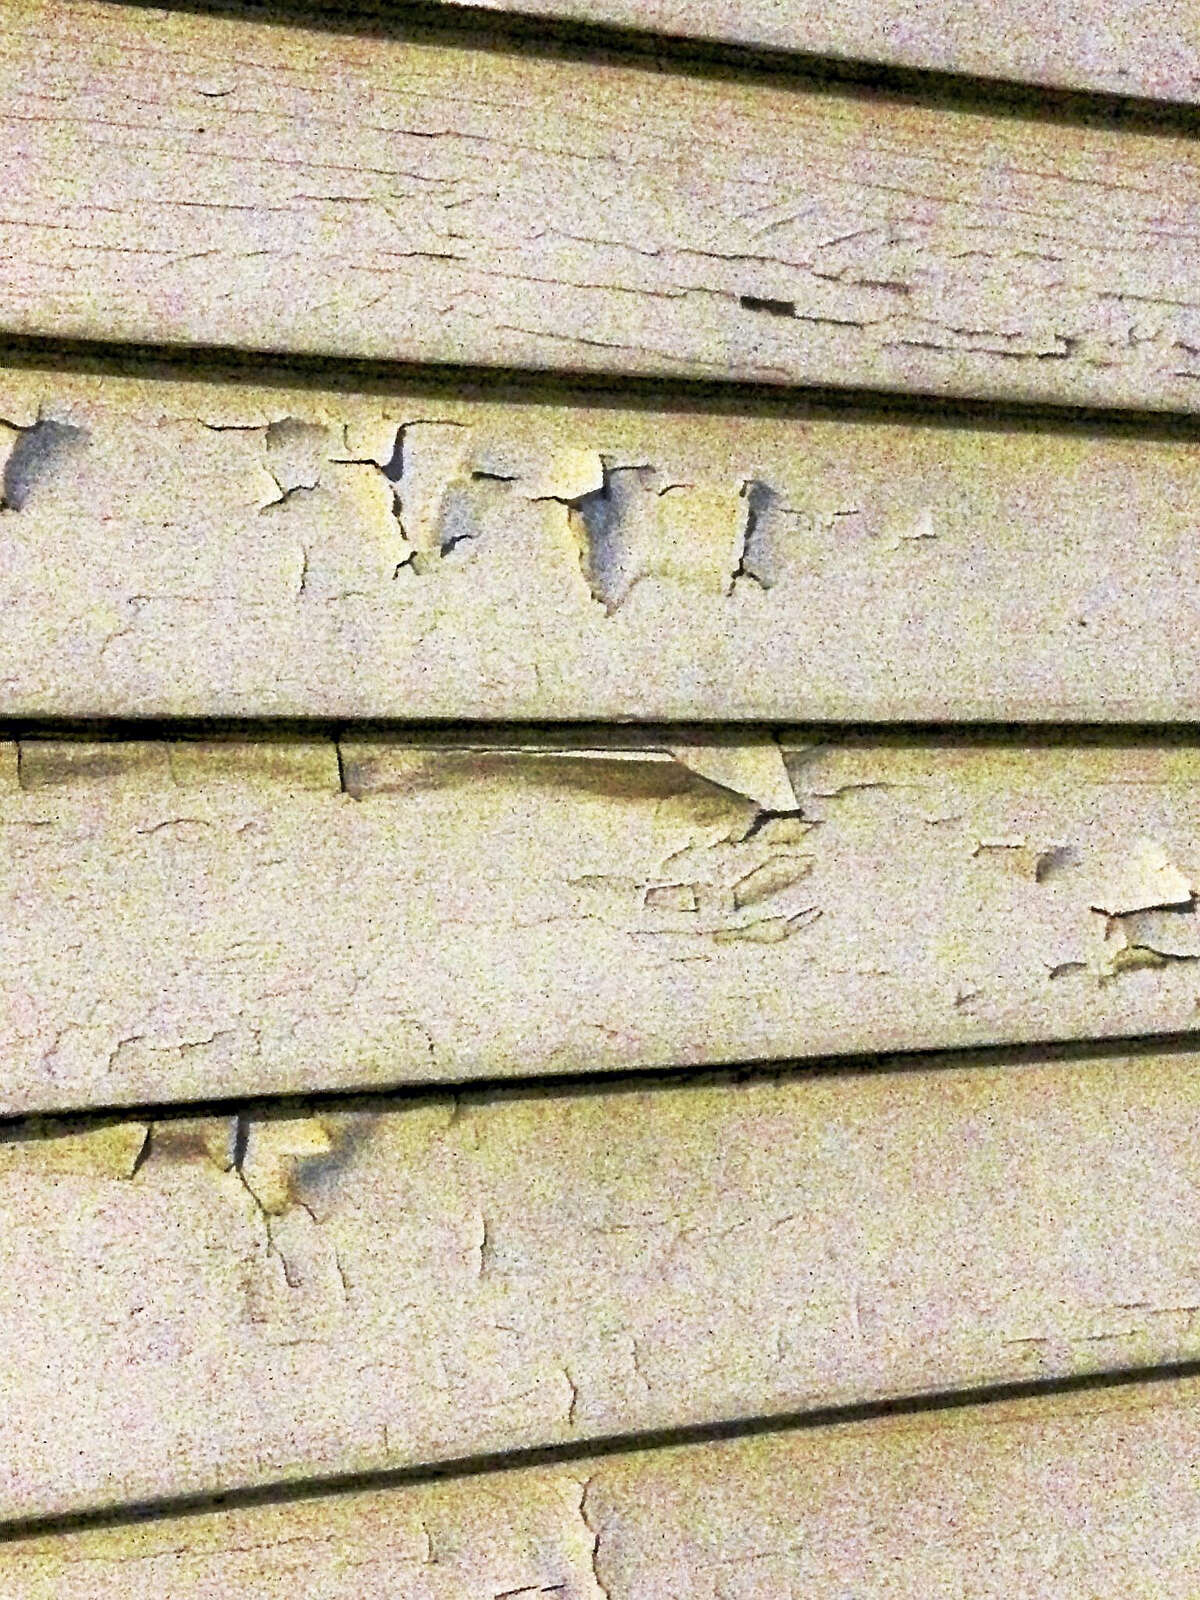 Harwinton Congregational Church is trying to raise funds to get some urgently needed exterior painting and siding work done at the church.